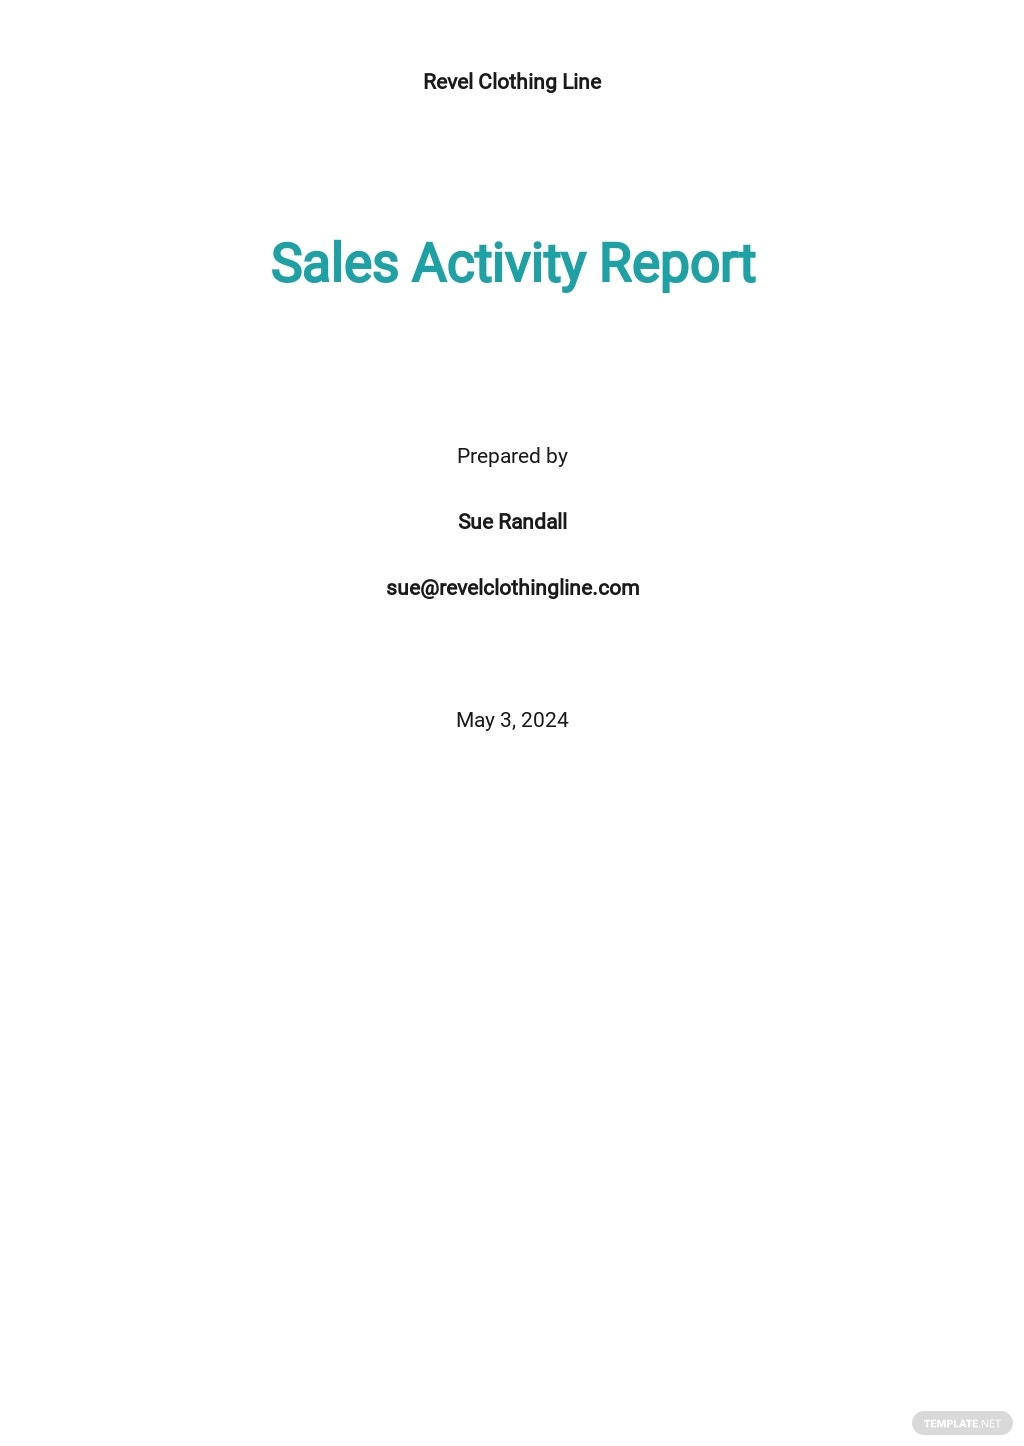 Sales Activity Report Template.jpe